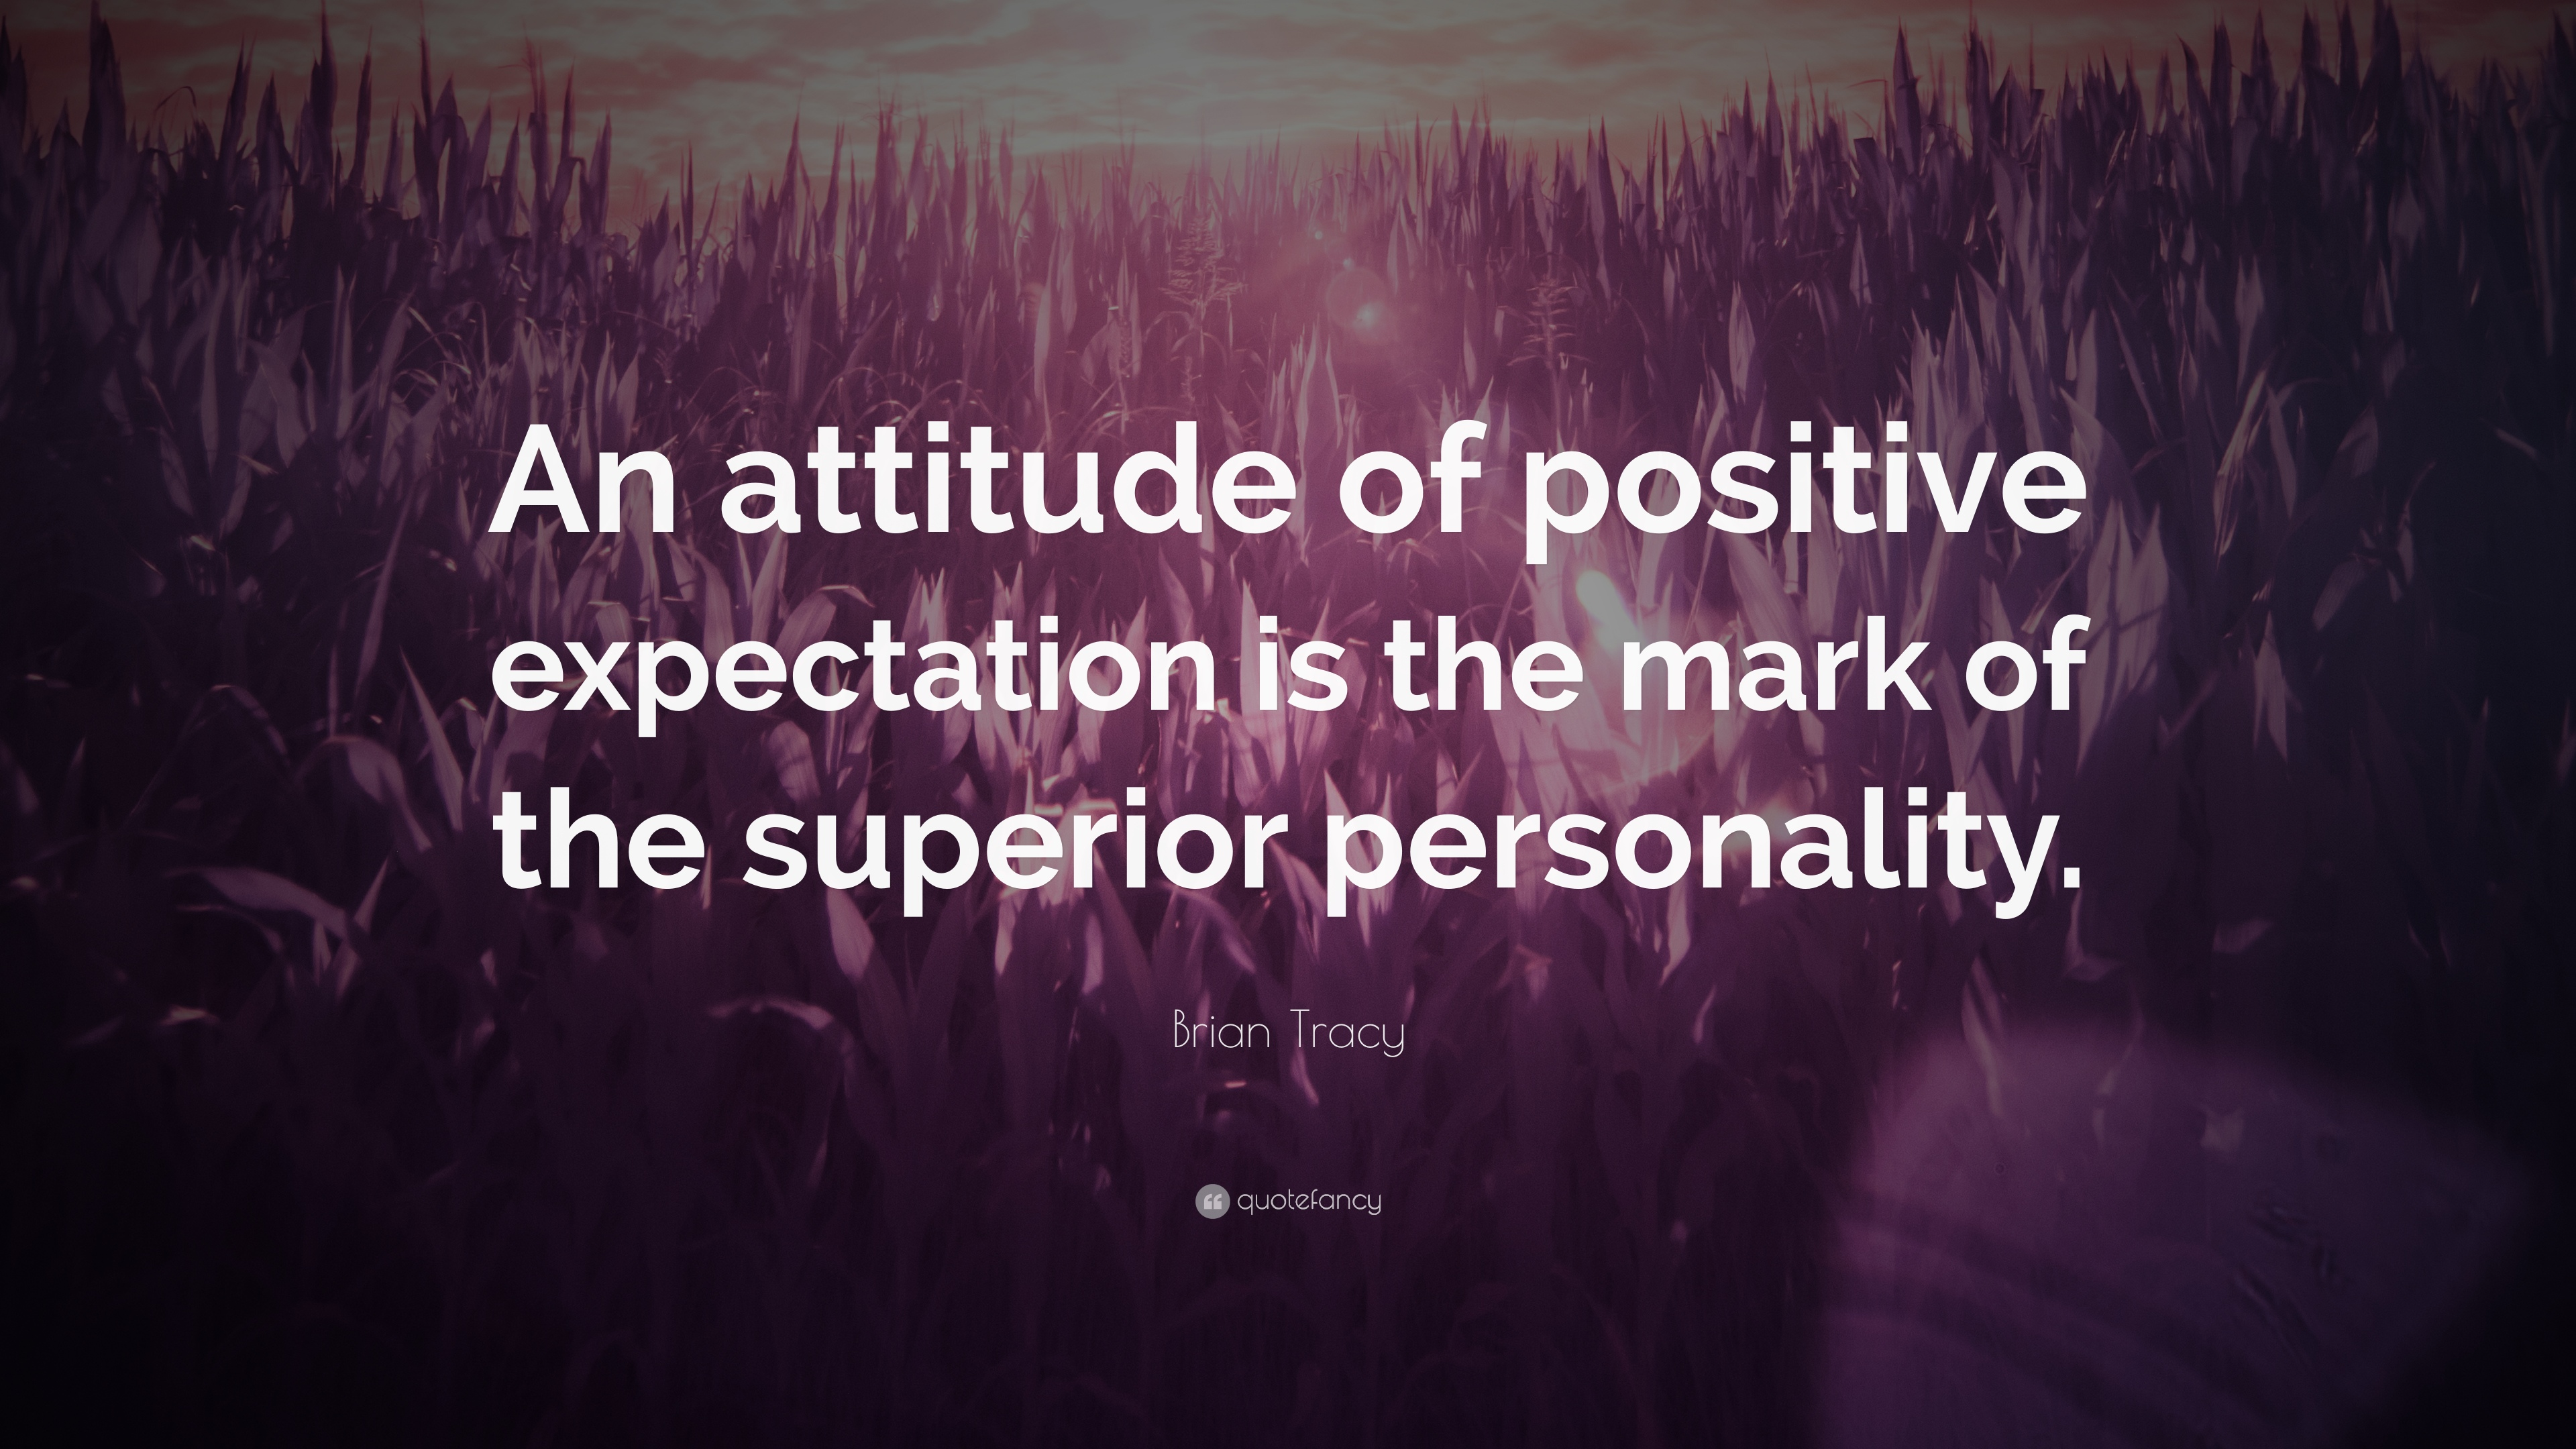 Positive Quotes An Attitude Of Expectation Is The Mark Superior Personality